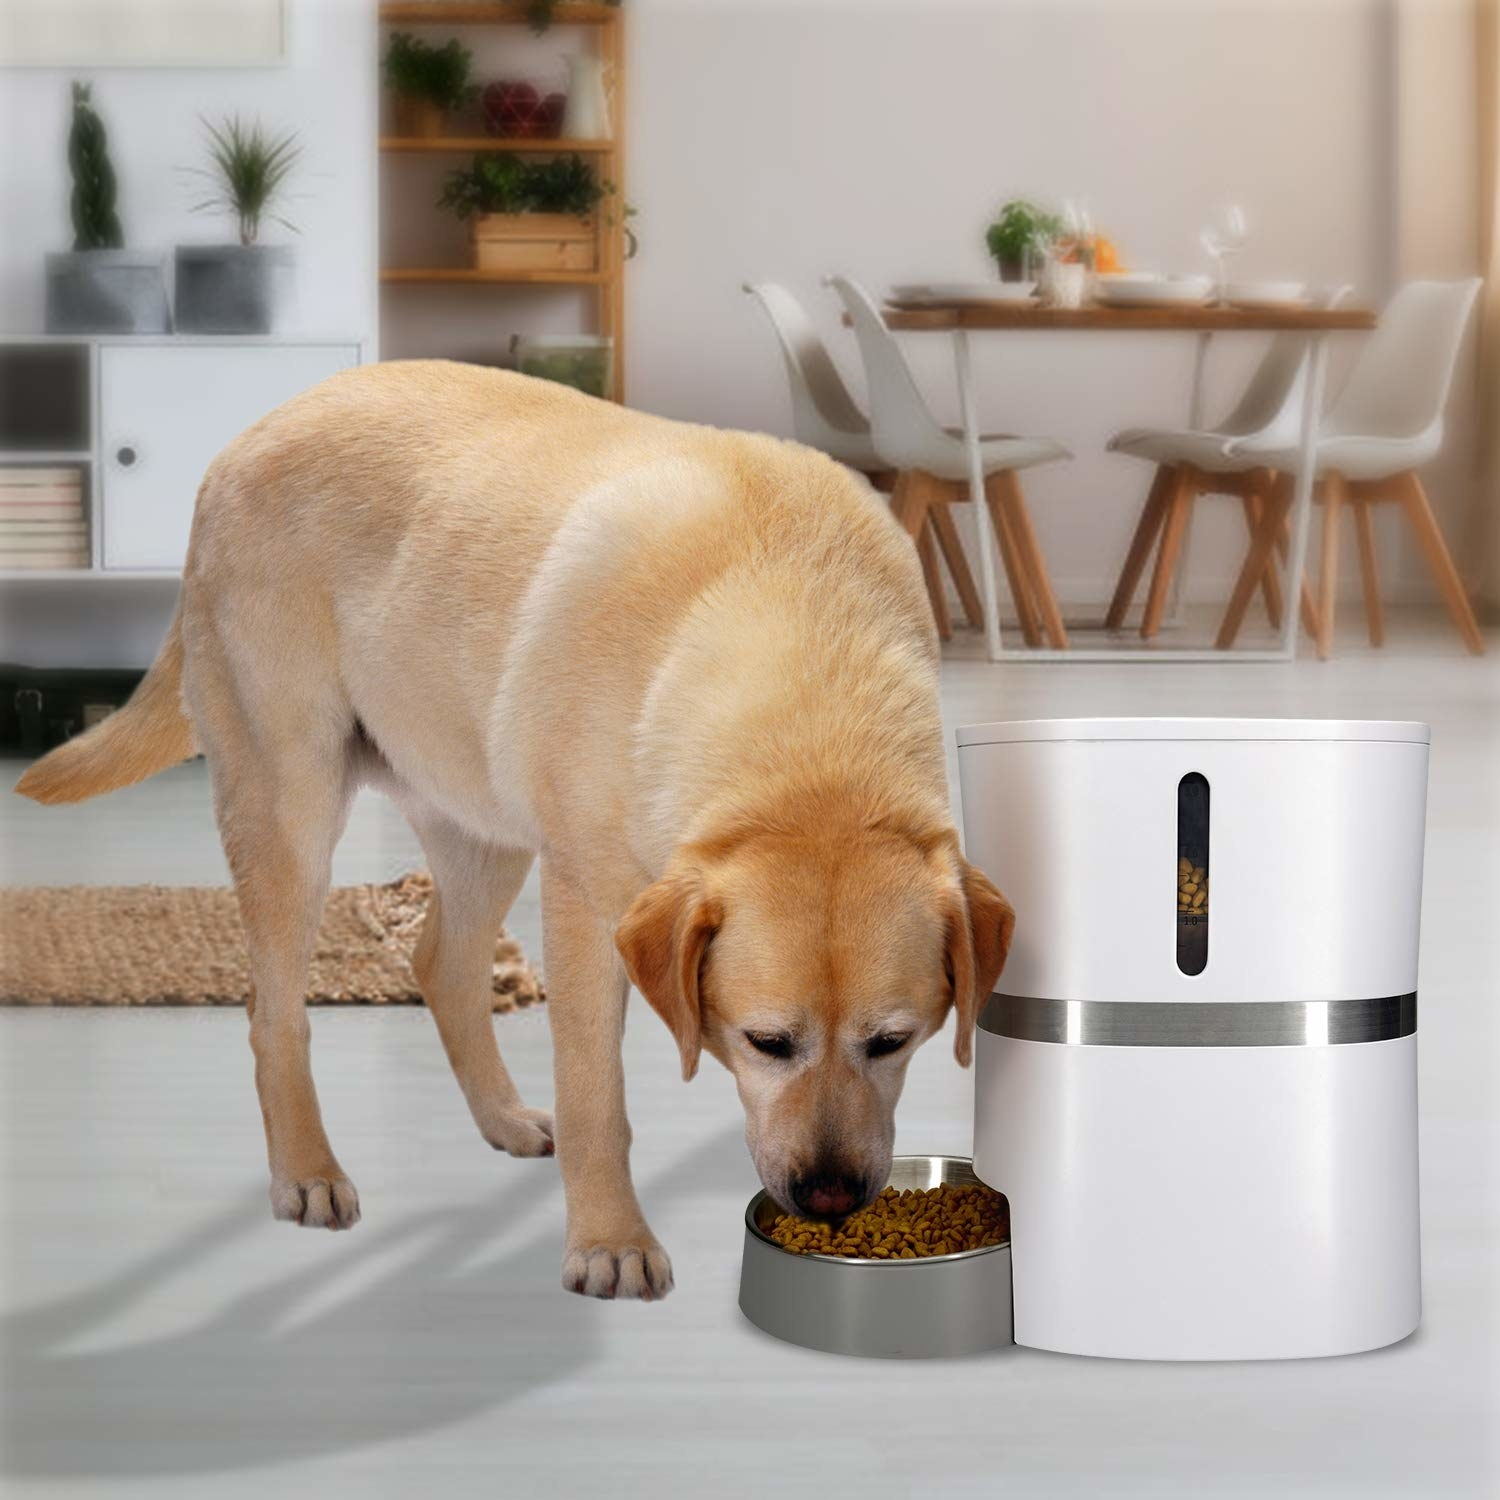 A dog eating from the food dispenser